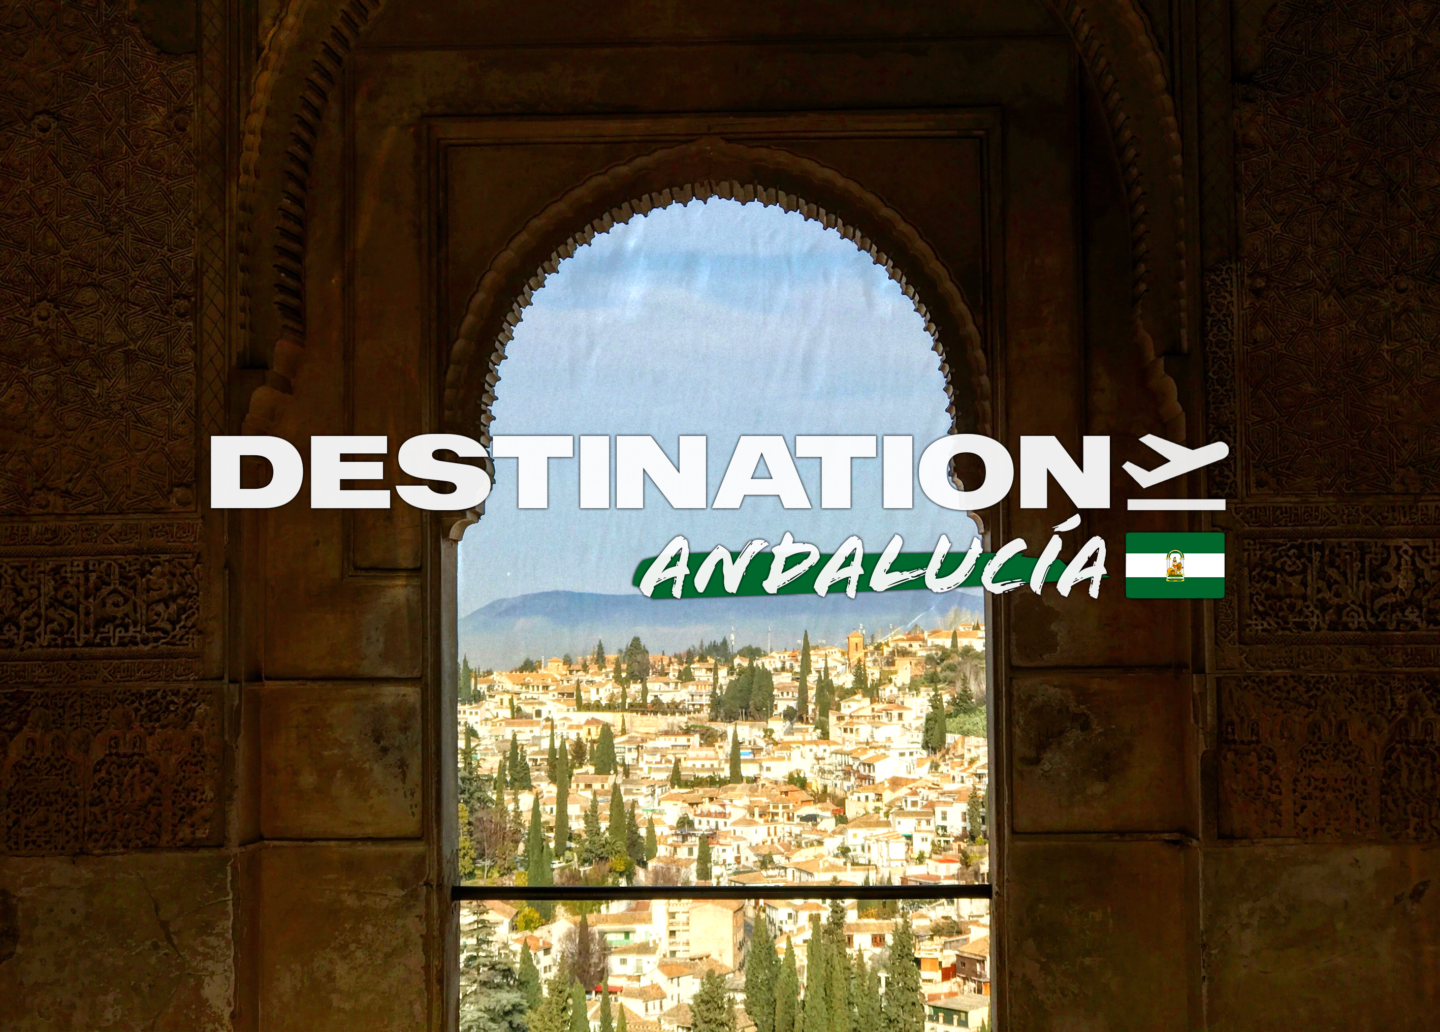 Call For Submissions - Destination: Andalucía